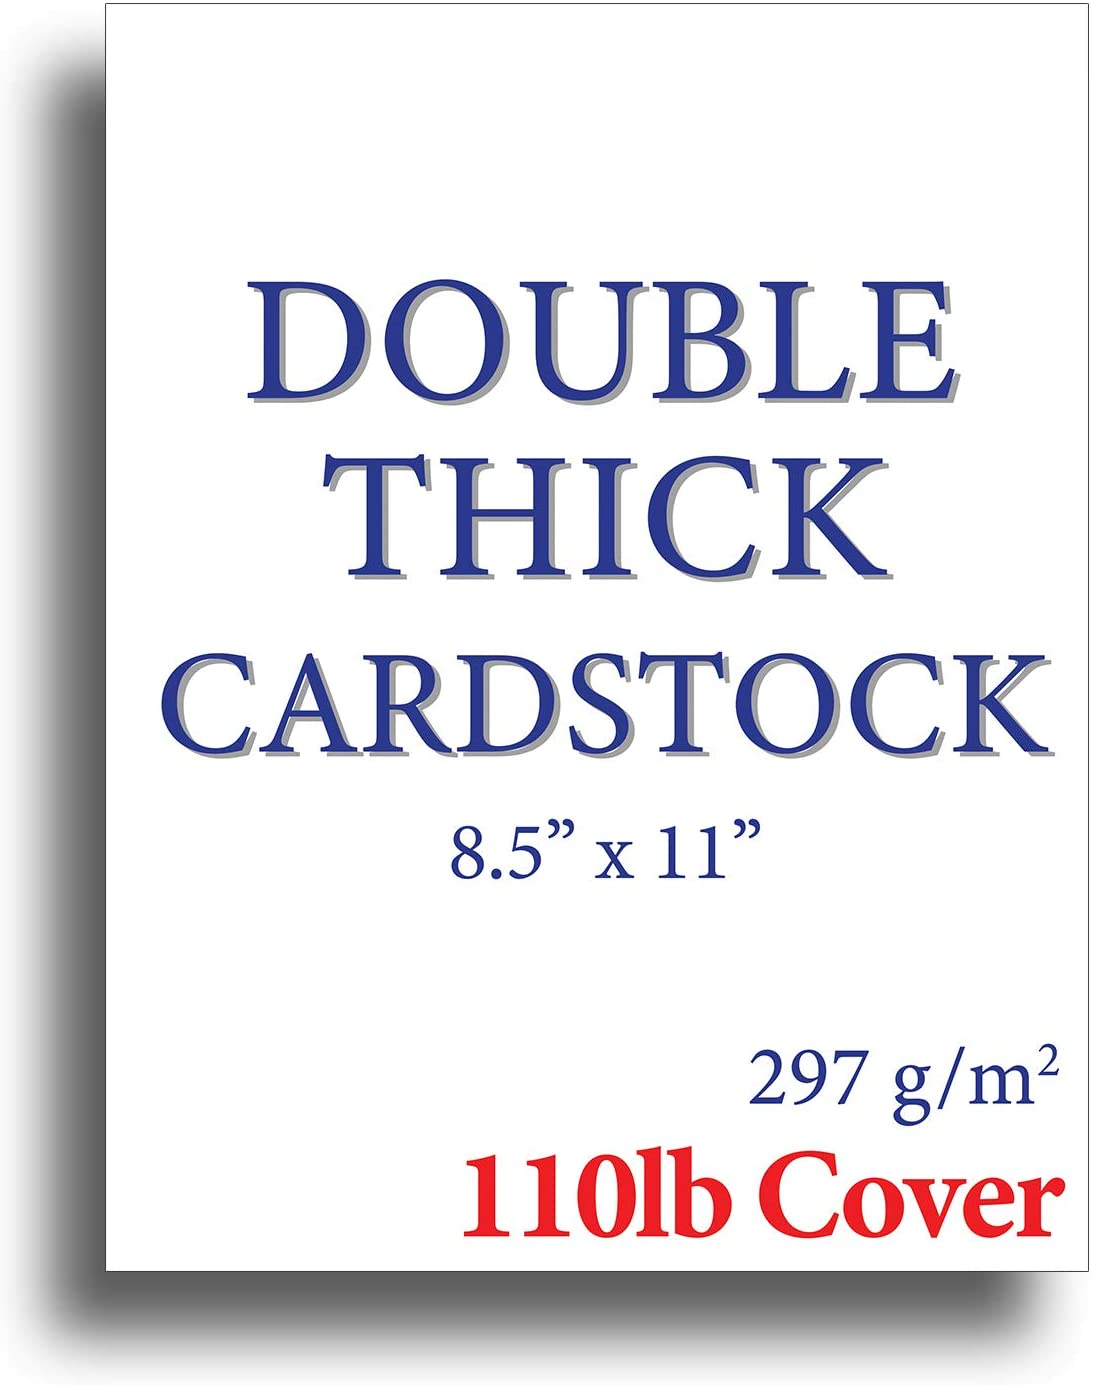 """110lb Cover Ultra Heavyweight Double Thick Cardstock - Bright White - 8.5"""" x 11"""" - For Inkjet/Laser Printers (200 Sheets)"""